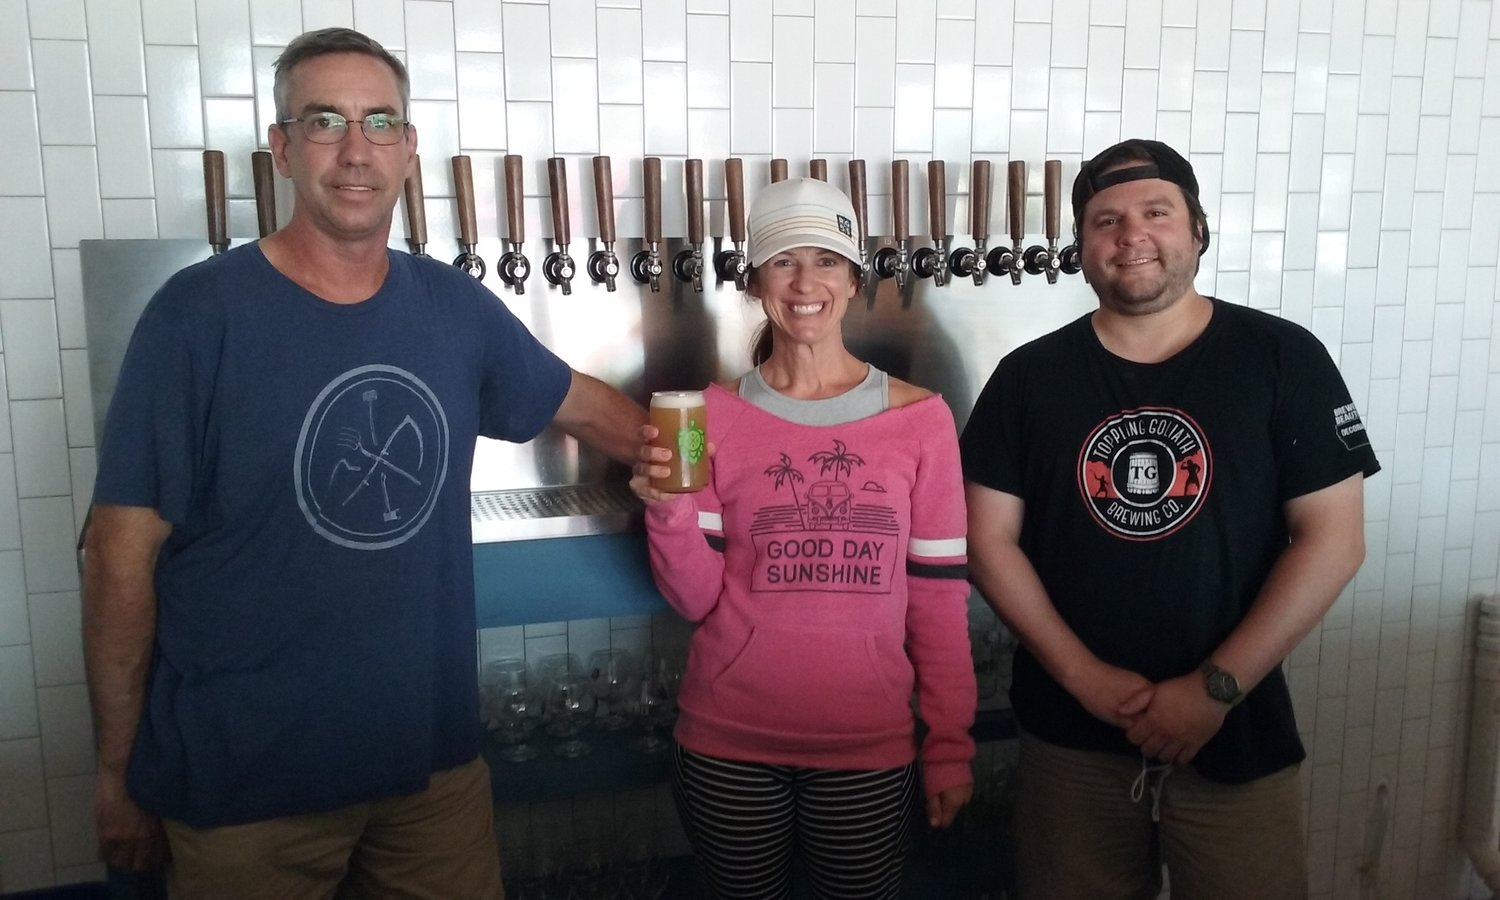 Really Good Beer Stop, a craft beer tap room, has opened in Nocatee Town Center. Pictured from left are Bob Van Scoy, co-owner Angie Brack and Riley McKelvie. Not pictured: co-owner Tim Brack.